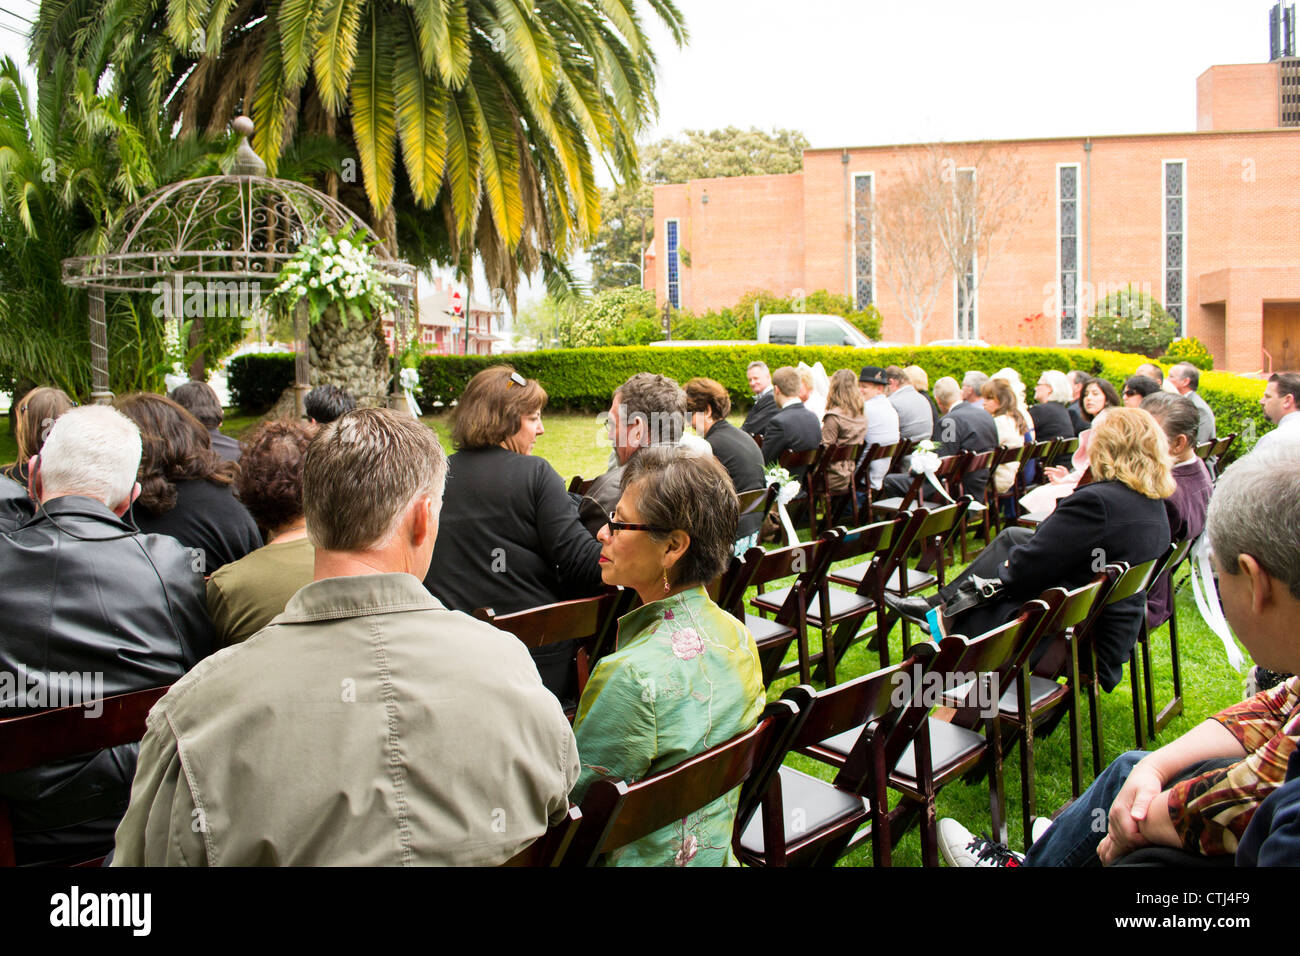 The audience waiting for the wedding to start. - Stock Image